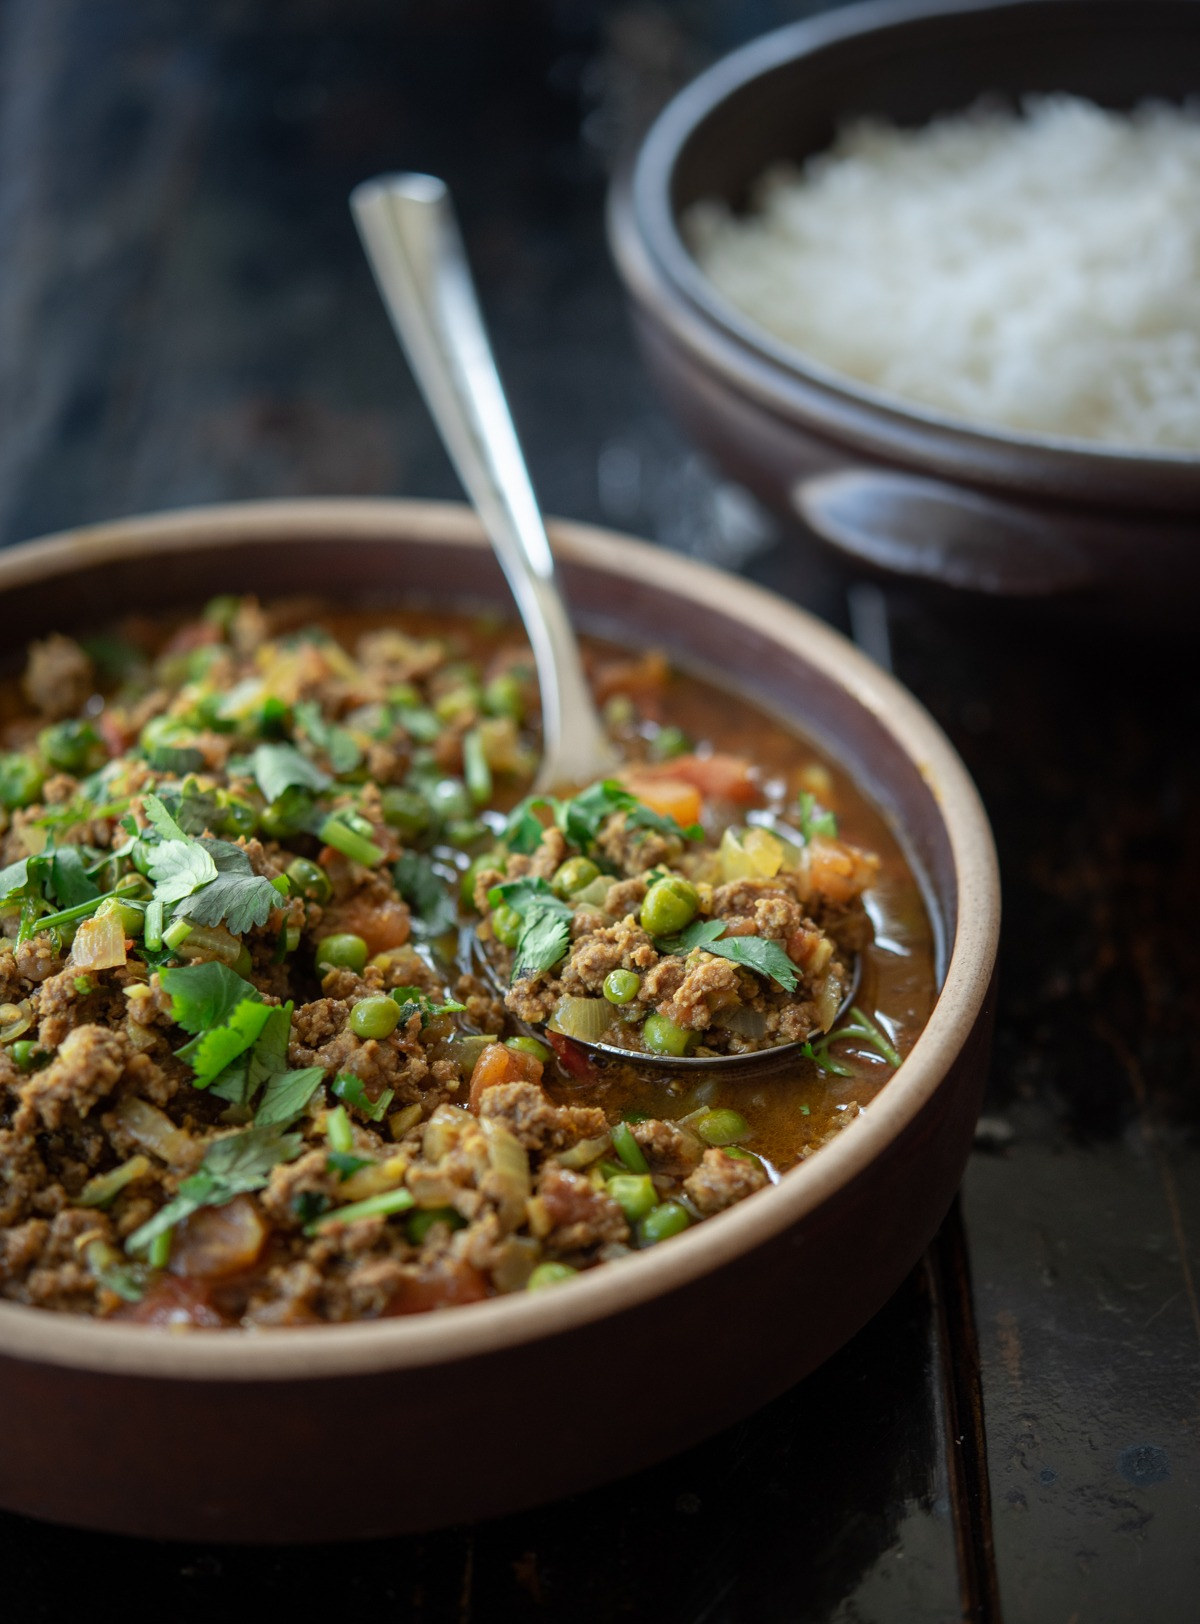 Serve this tomato based ground beef curry over rice for an easy dinner